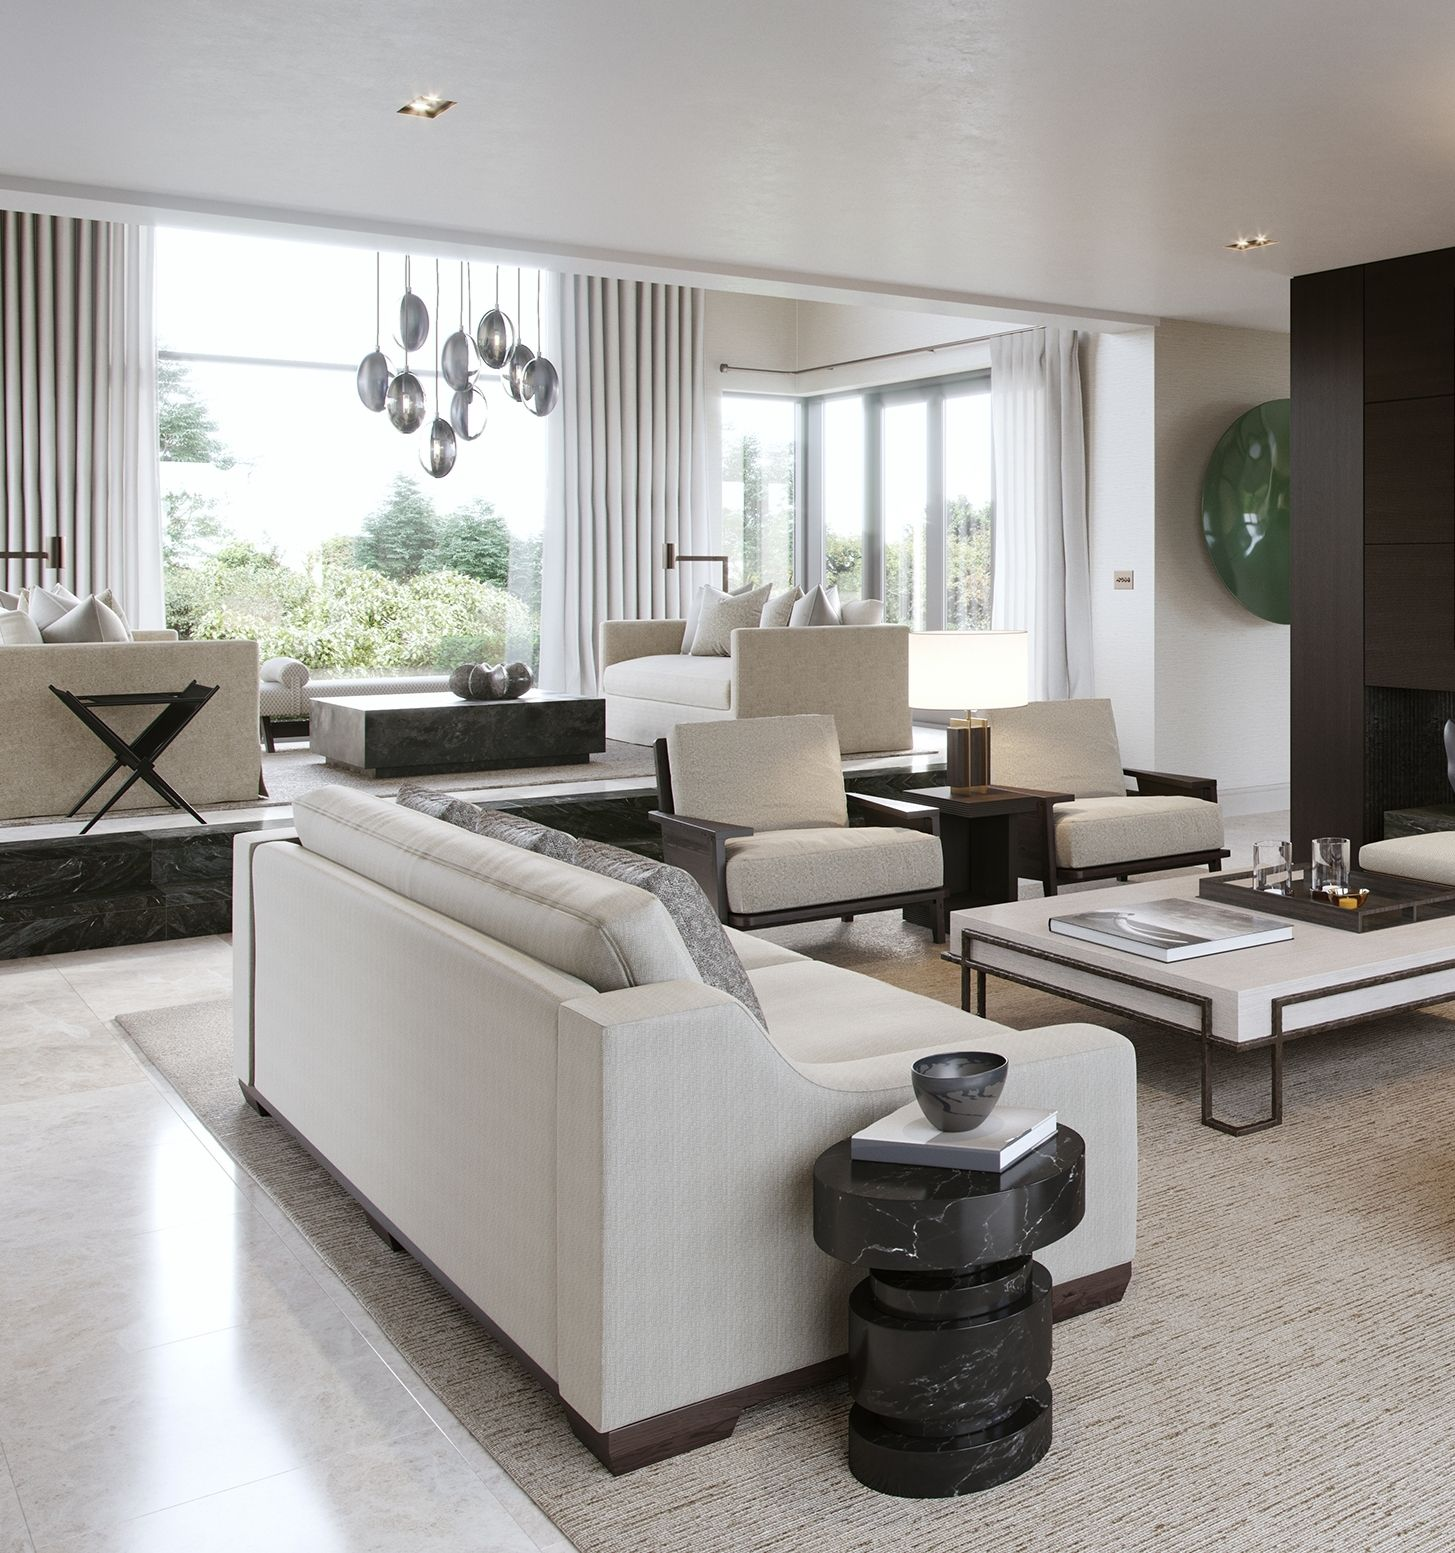 High End Interior Design, Luxury Residential Interiors